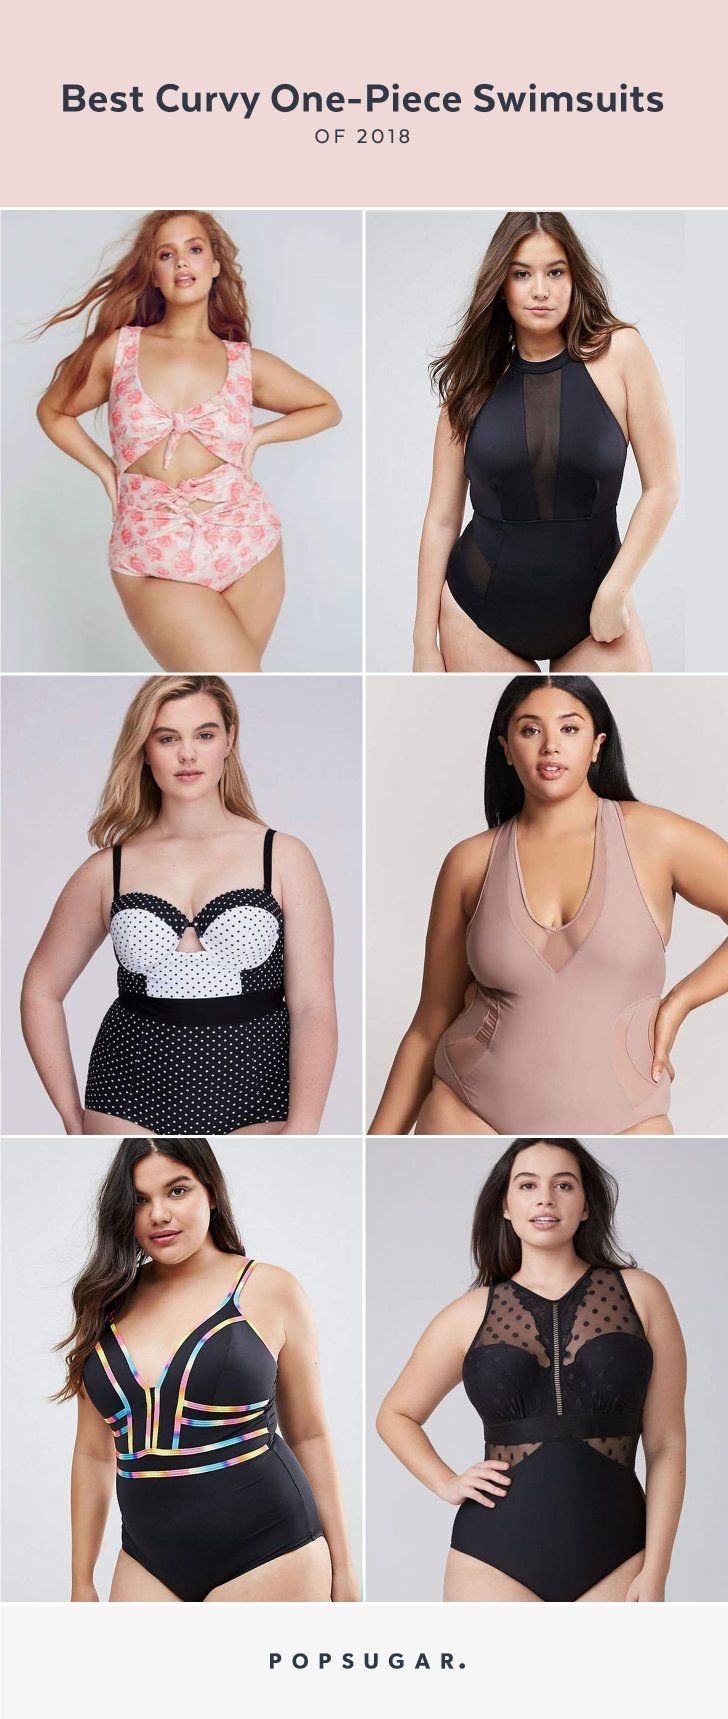 47c84c5b59633 Prepare to Be Obsessed — We Found the 11 Cutest One-Piece Swimsuits For  Curvy Girls